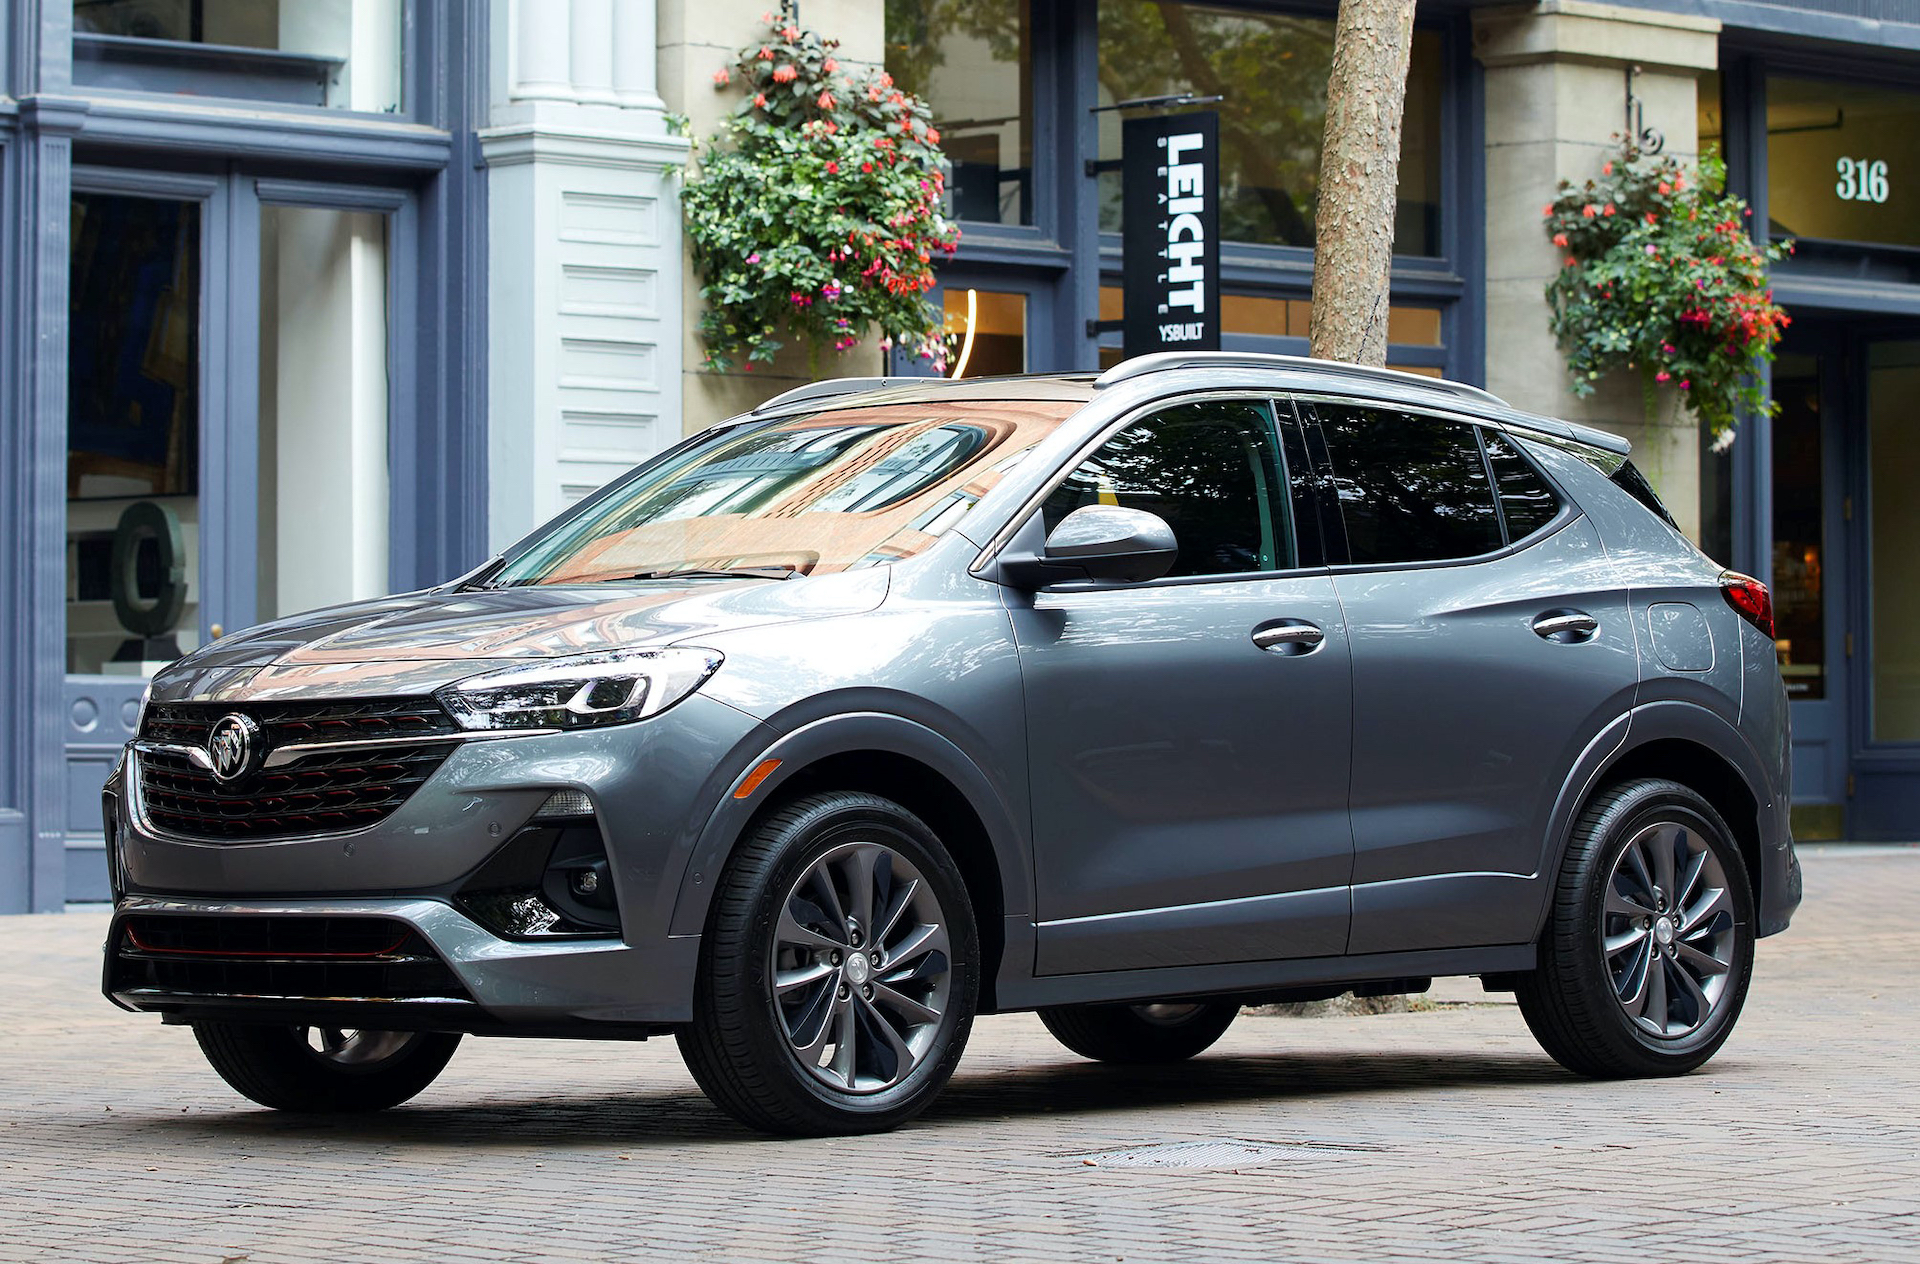 2021 Buick Encore Review, Ratings, Specs, Prices, And Photos 2021 Buick Encore Gx Manual, Engine, Dimensions